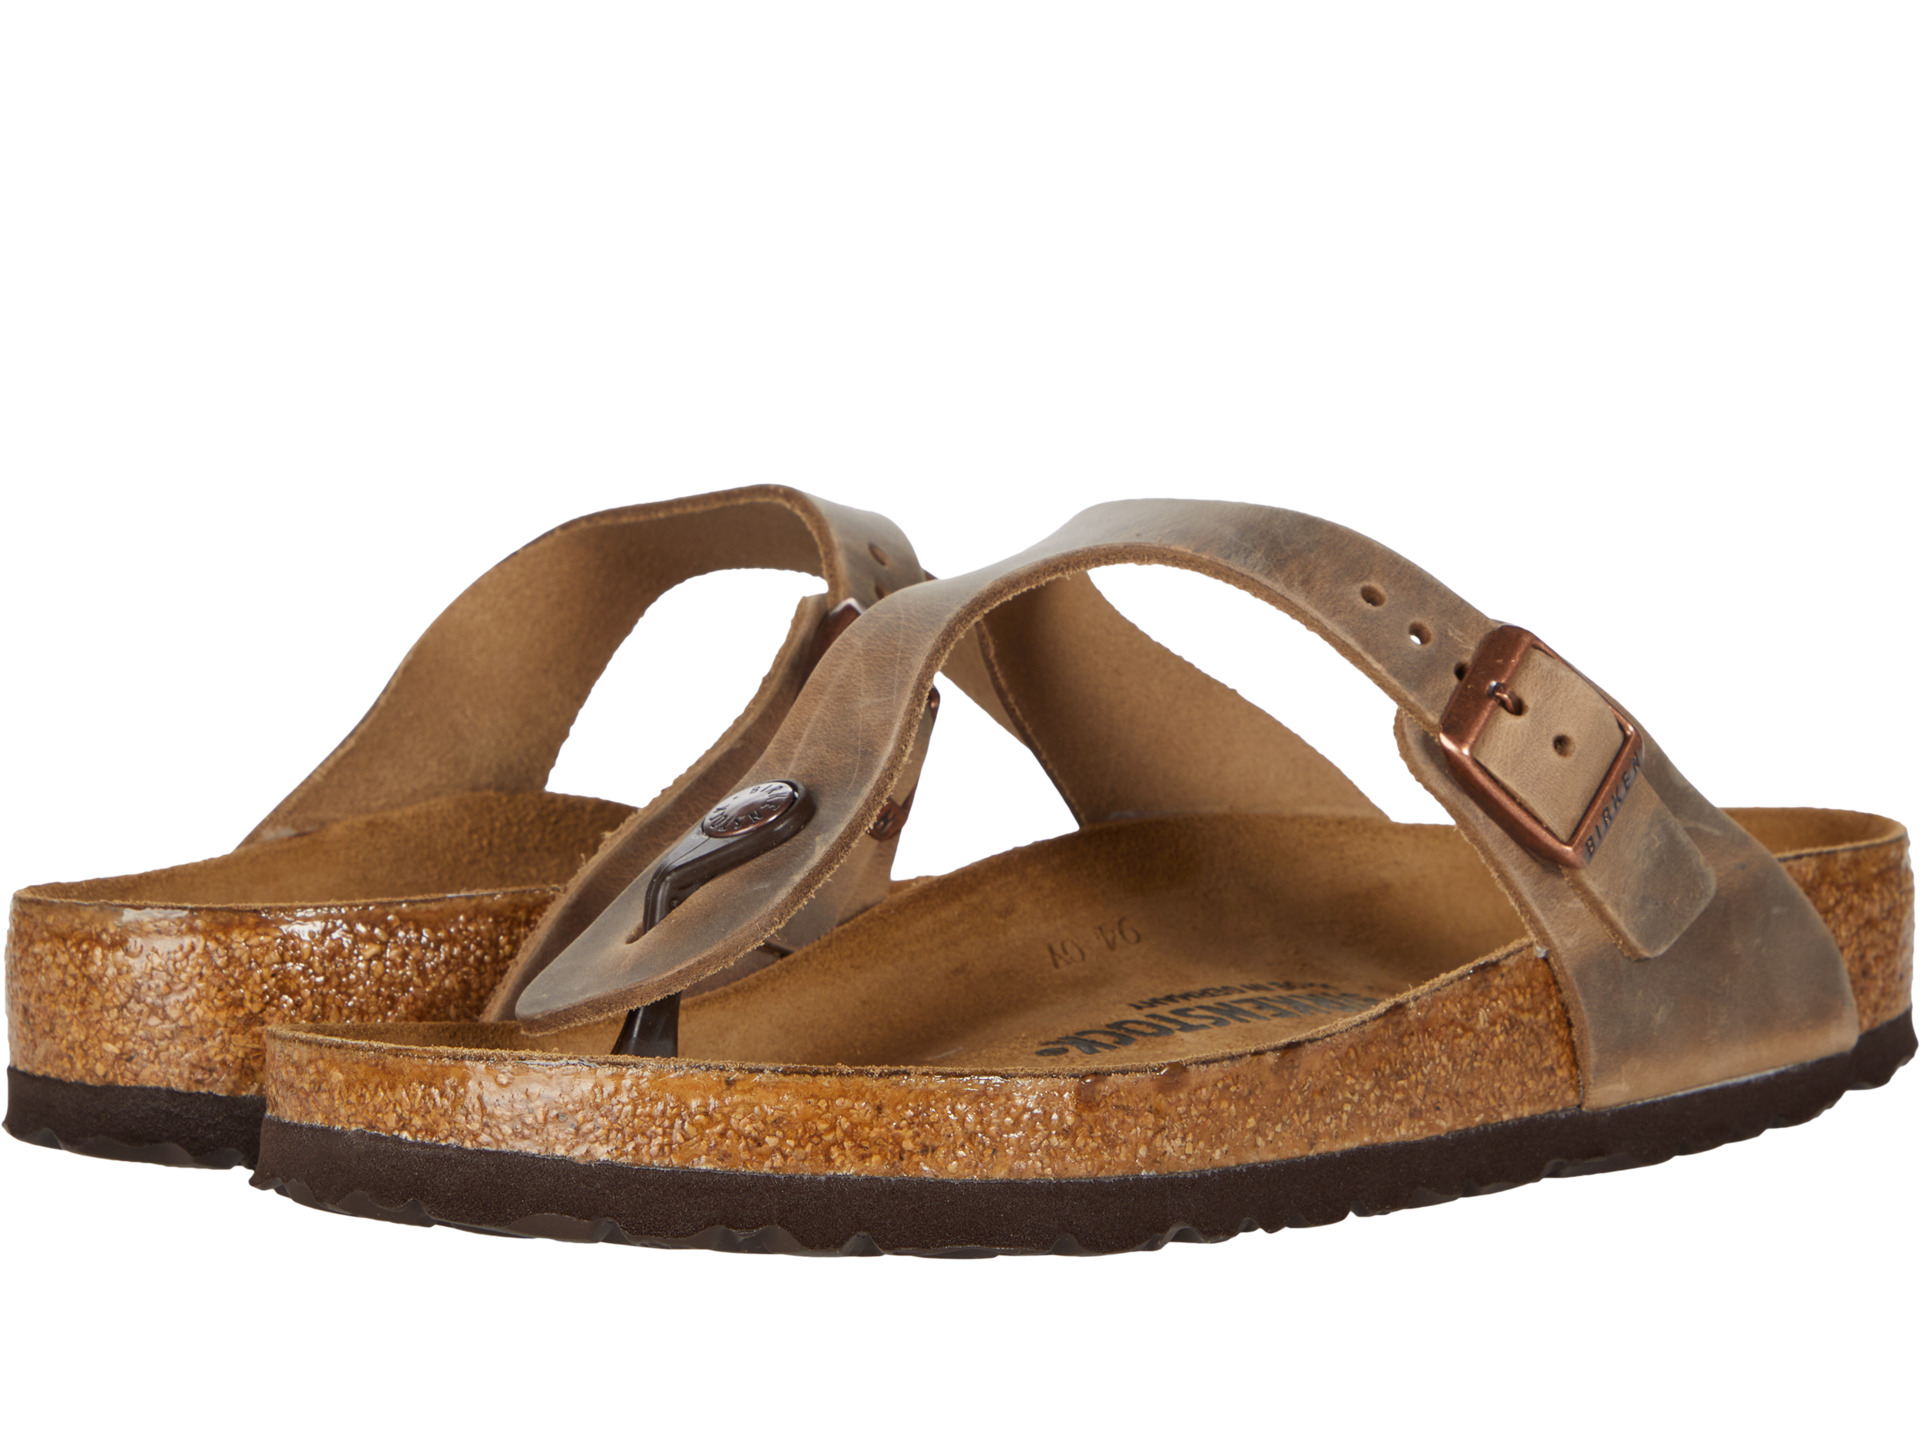 e0a63831085 Best Price For Birkenstock Sydney Taupe Sandals Flat